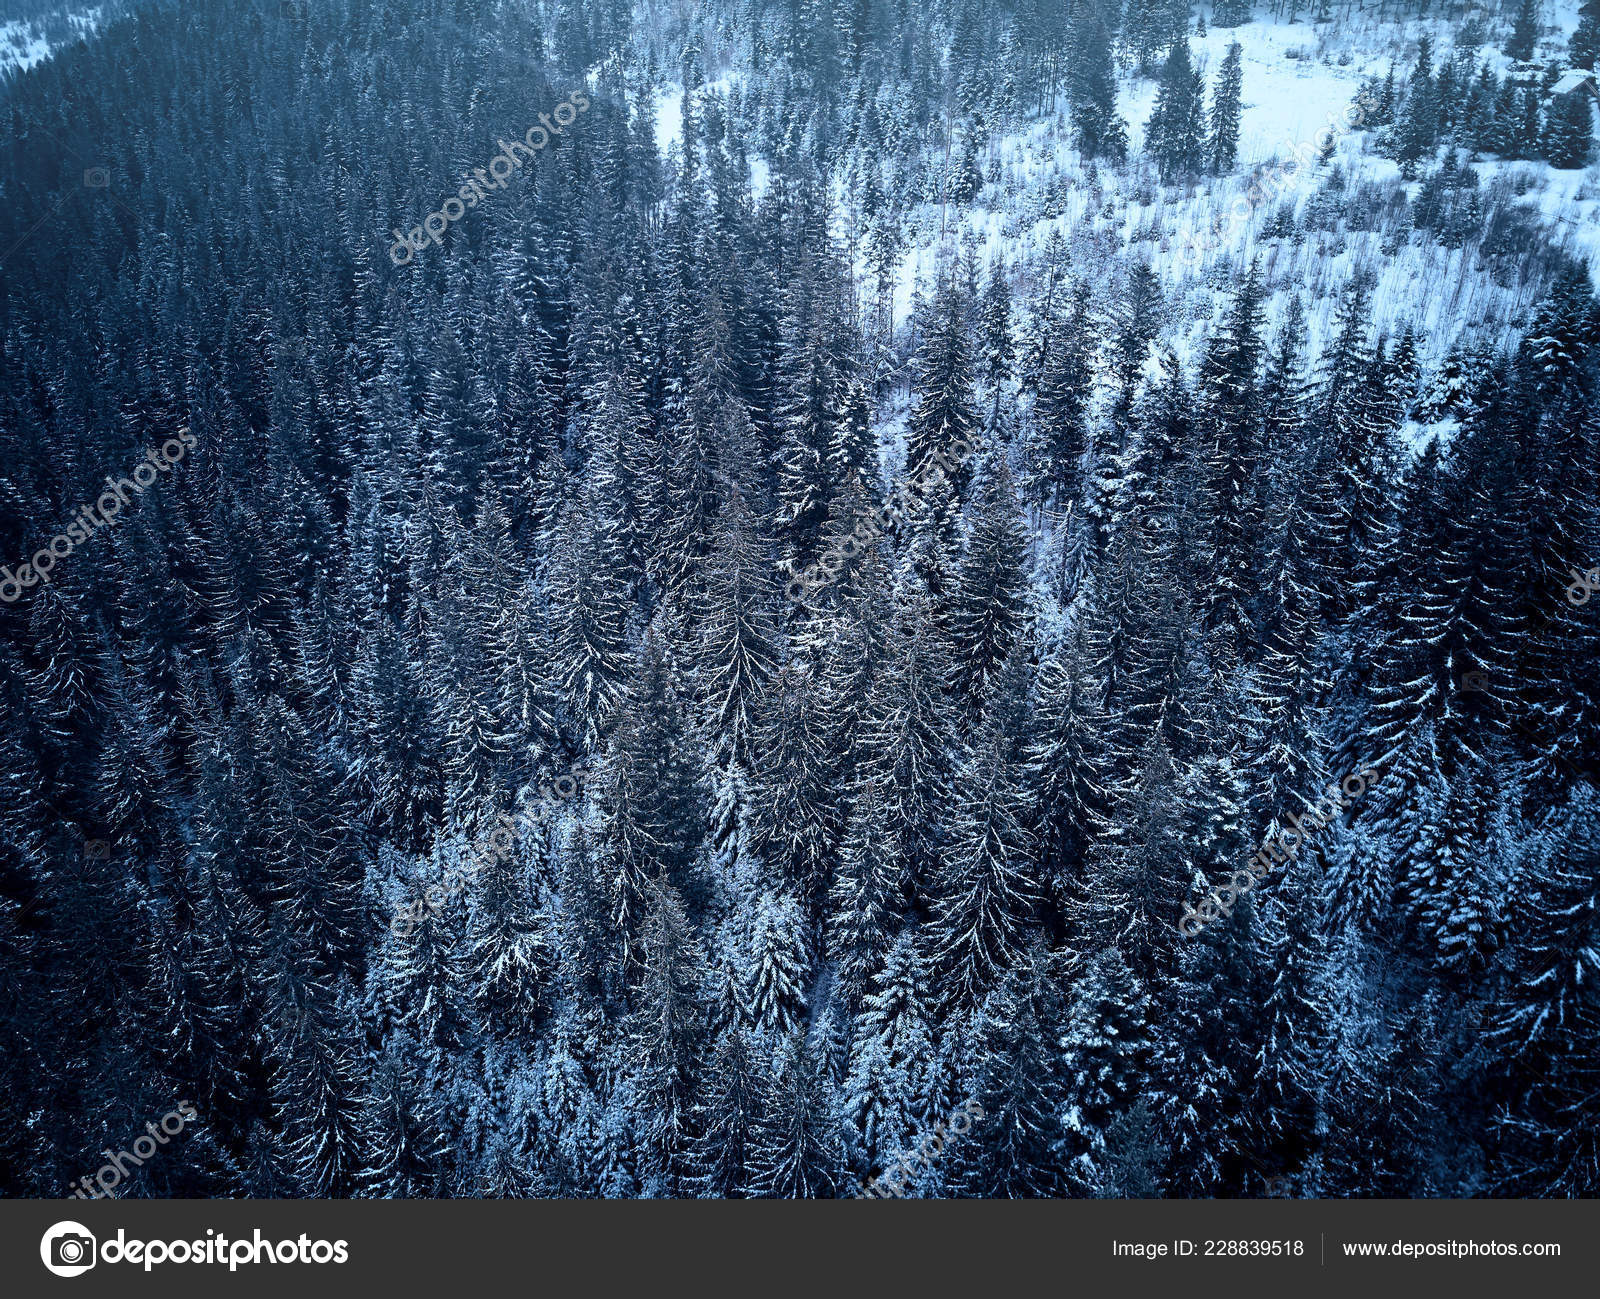 Aerial View From Above Of Winter Forest Covered In Snow Pine Tree And Spruce Forest Top